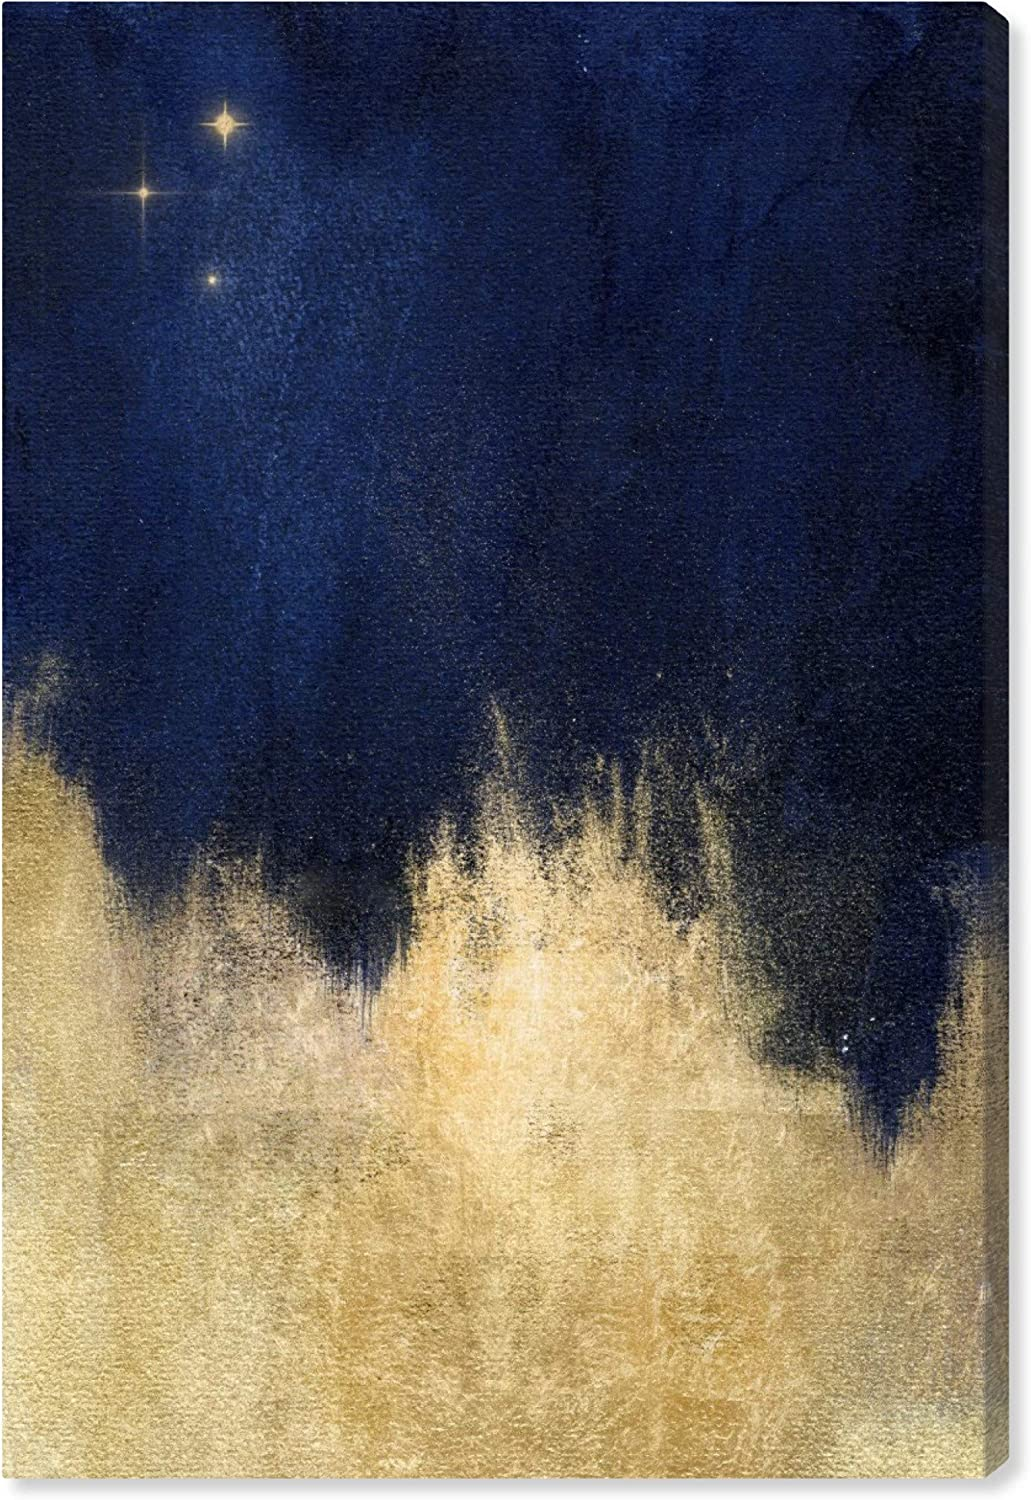 Oliver Gal 'Stars at Midnight' The Abstract Wall Art Decor Collection Contemporary Premium Canvas Art Print